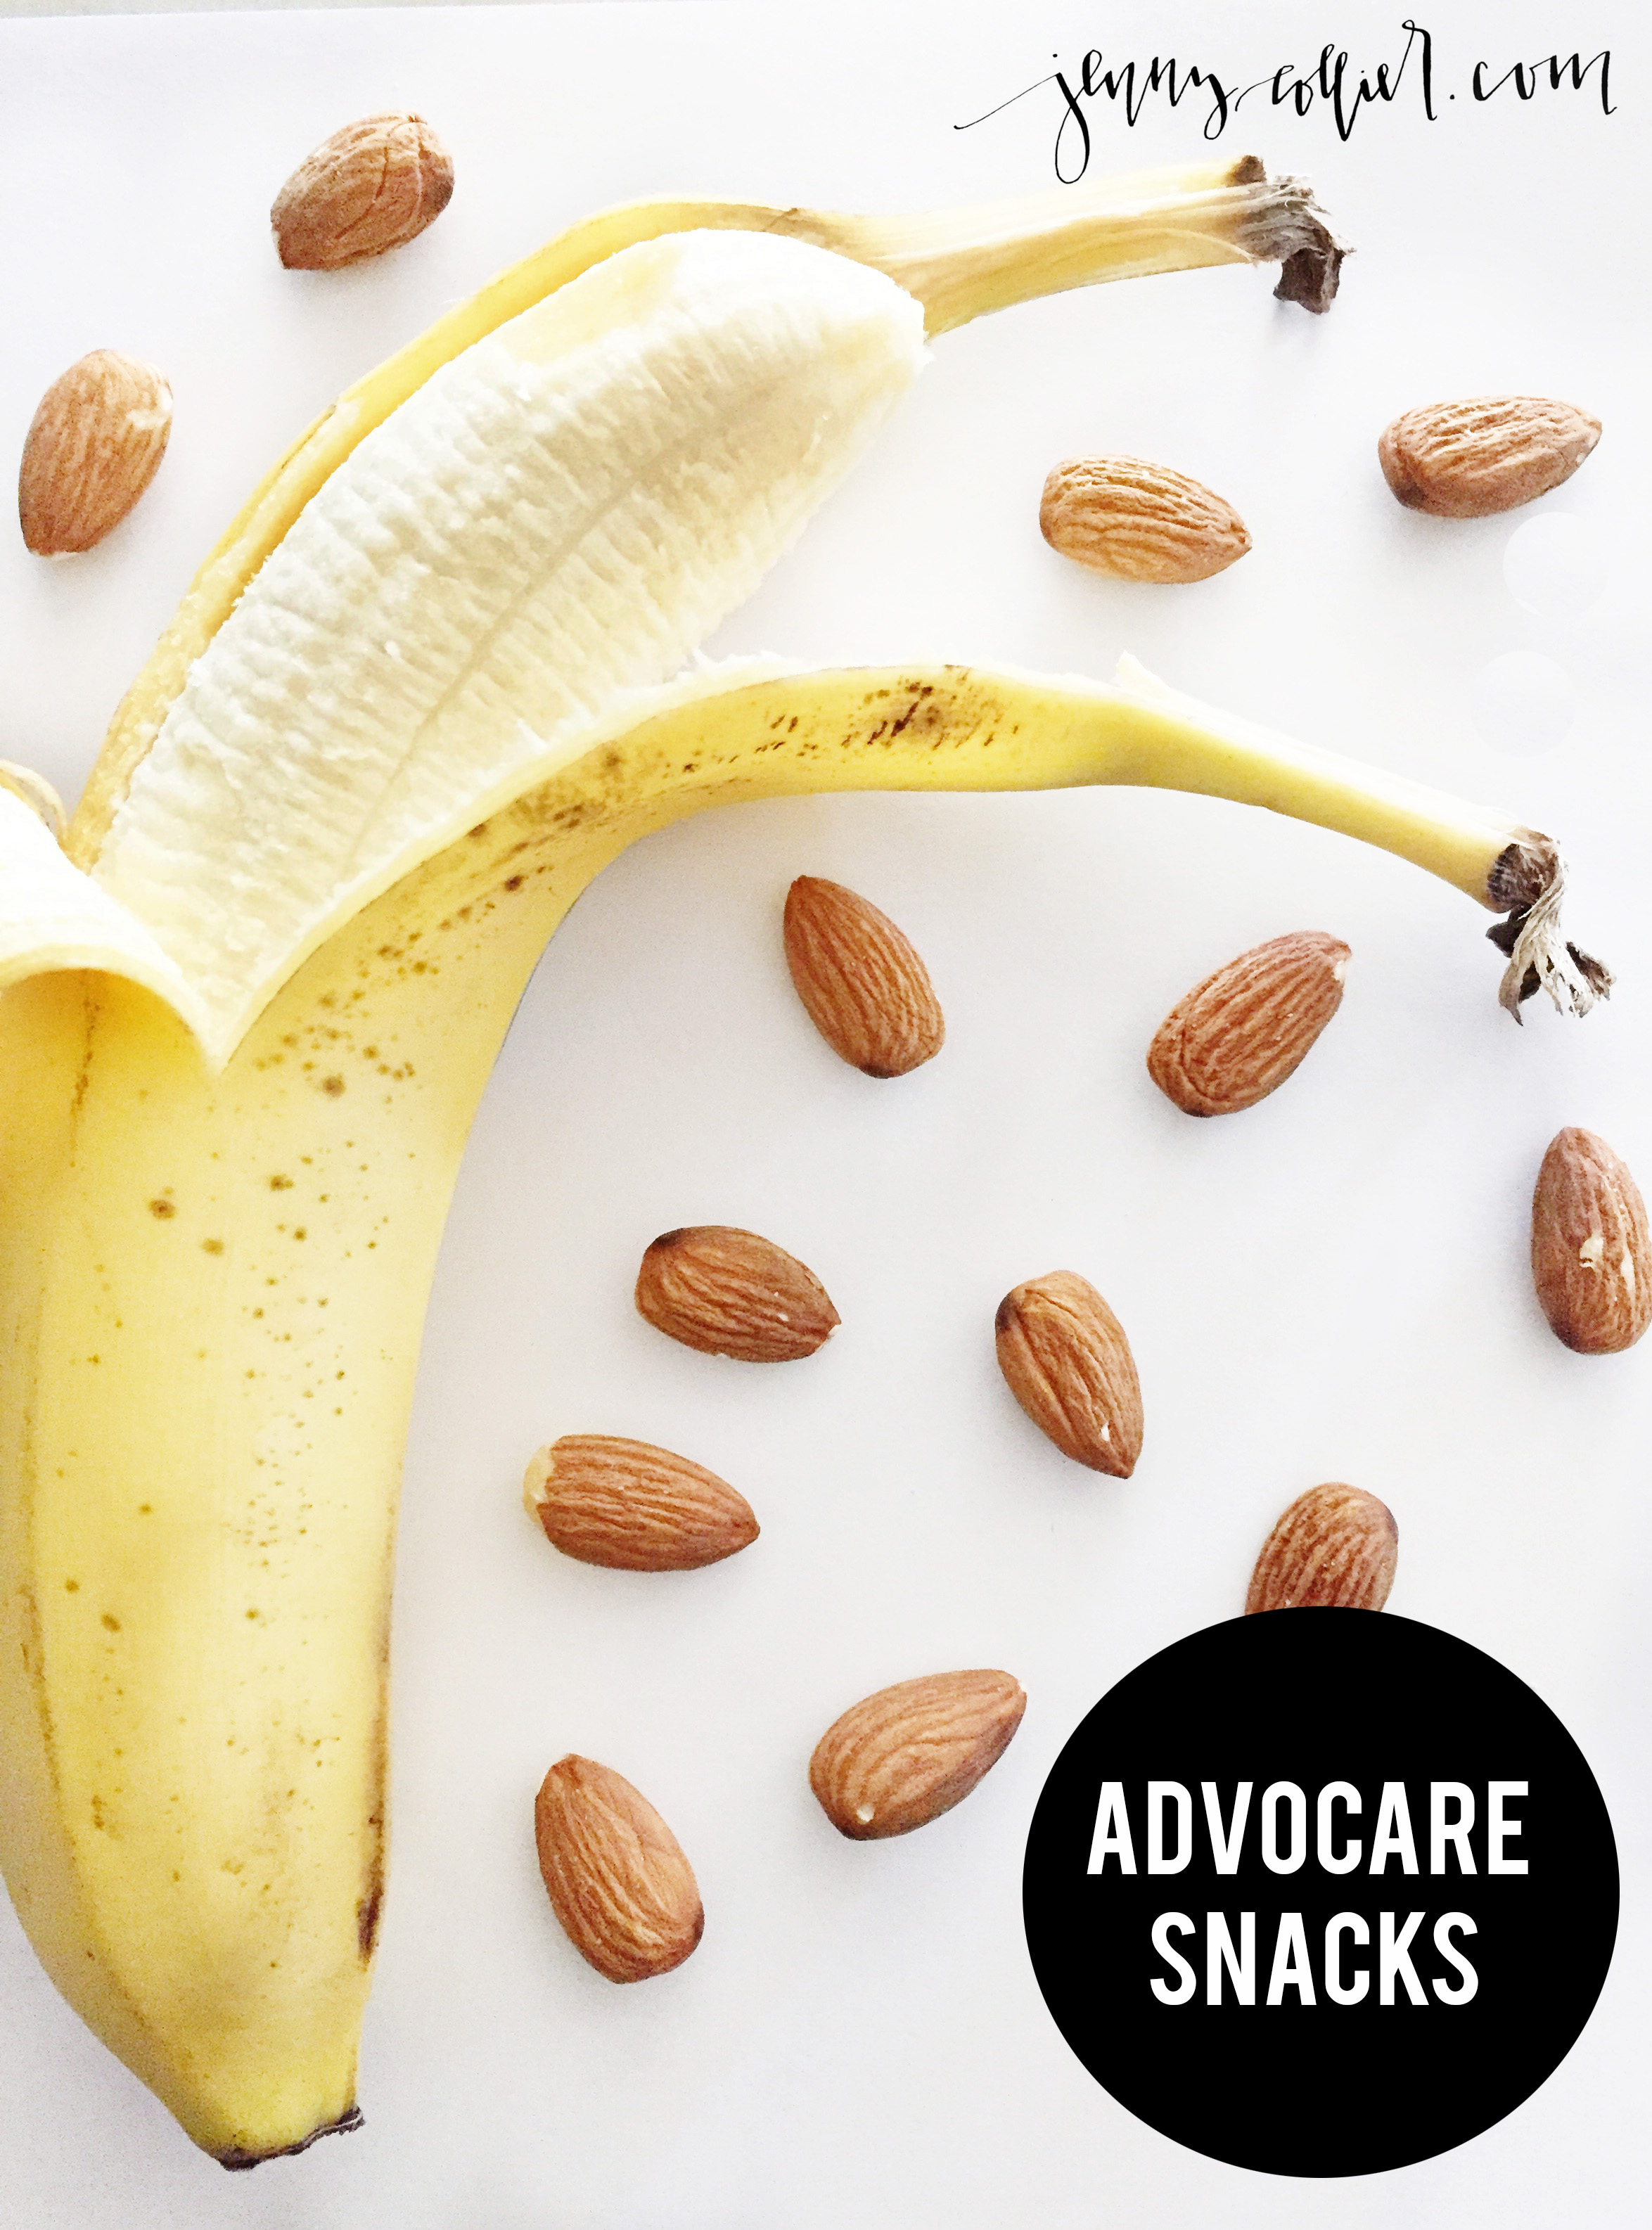 advocare snack list » jenny collier blog